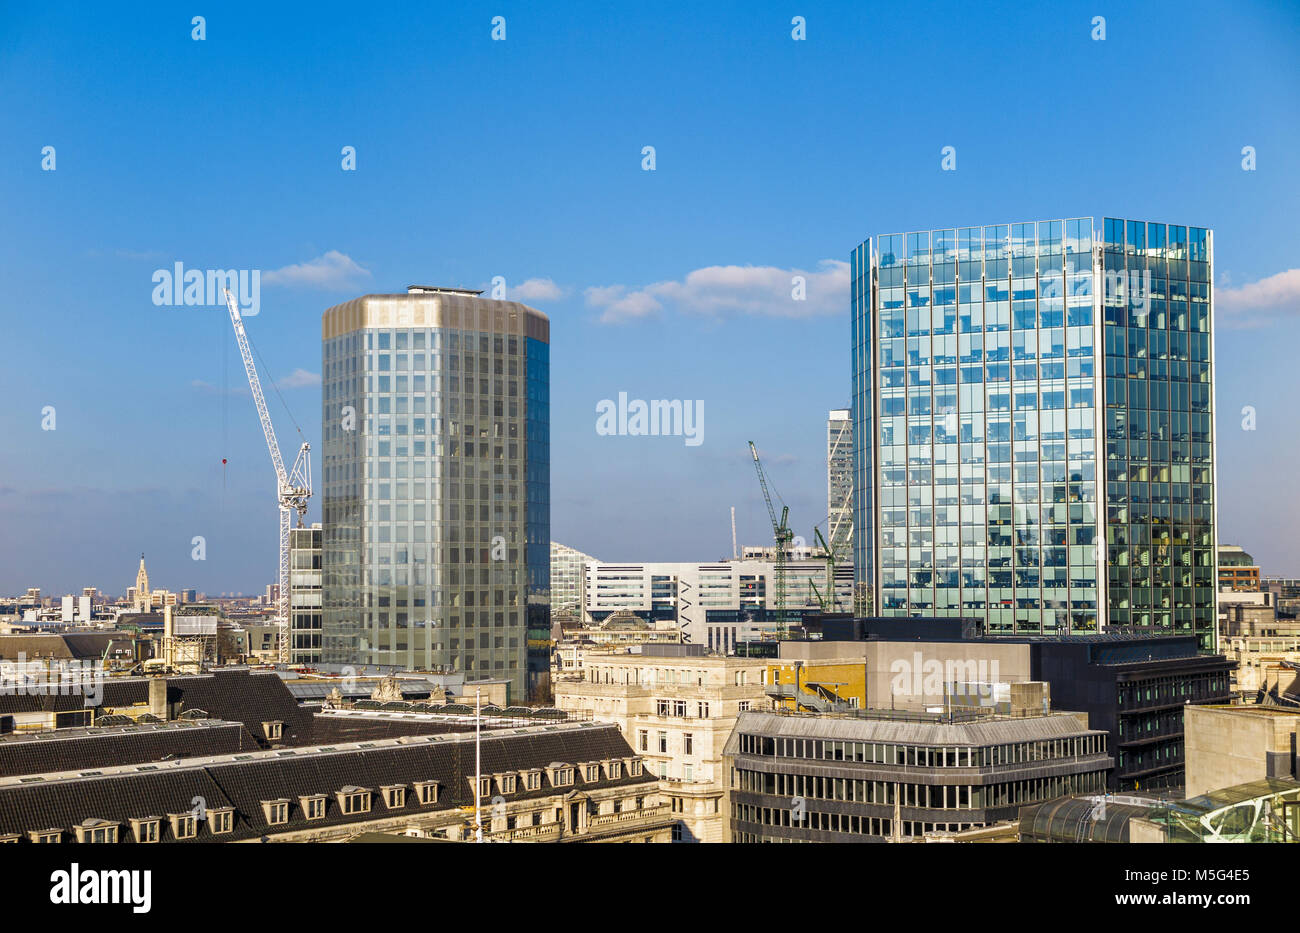 Angel Court in the City of London Bank Conservation Area and Stock Exchange Tower, EC2, London's financial district - Stock Image